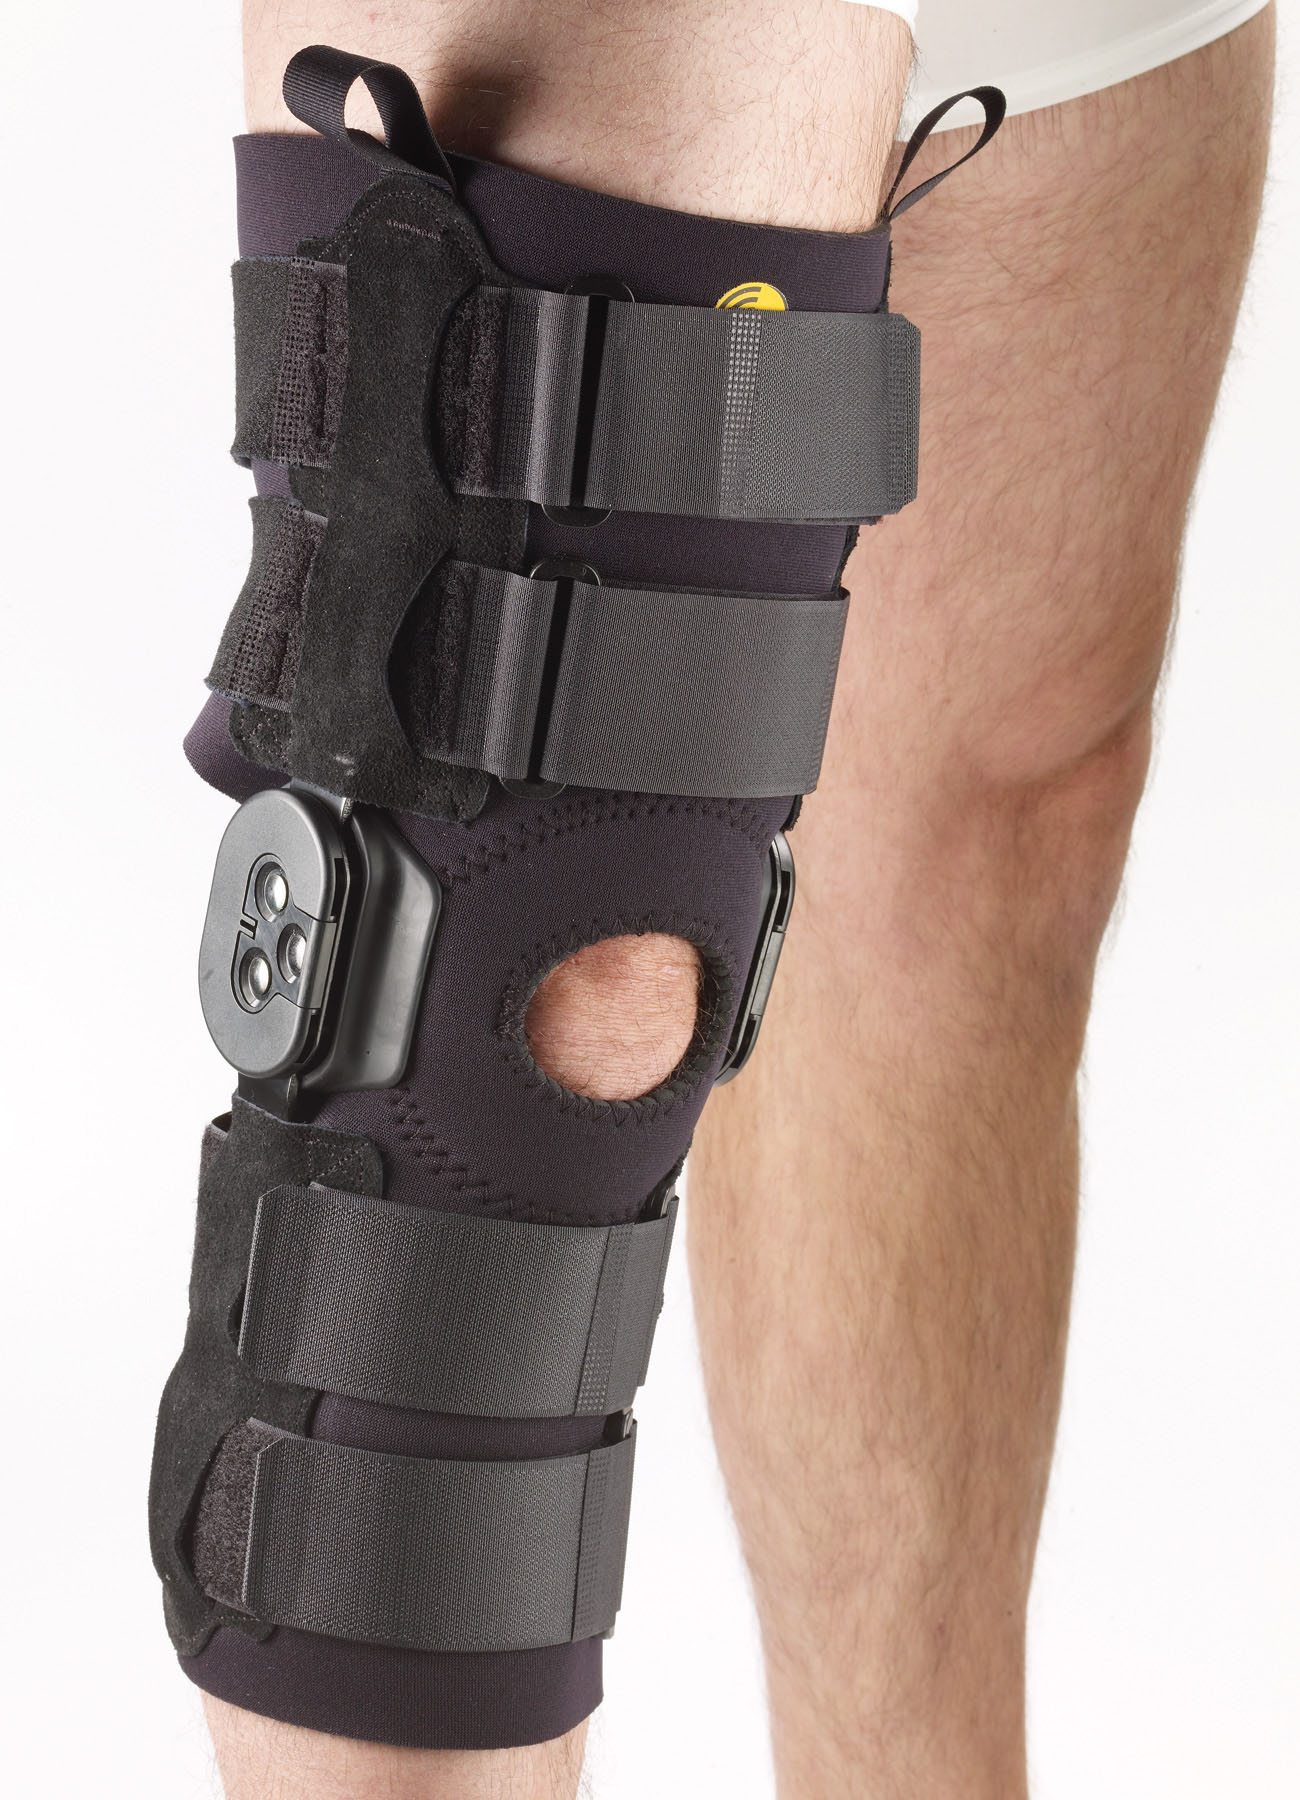 5ccc5bac62 Corflex Inc: Hinged Knee Support